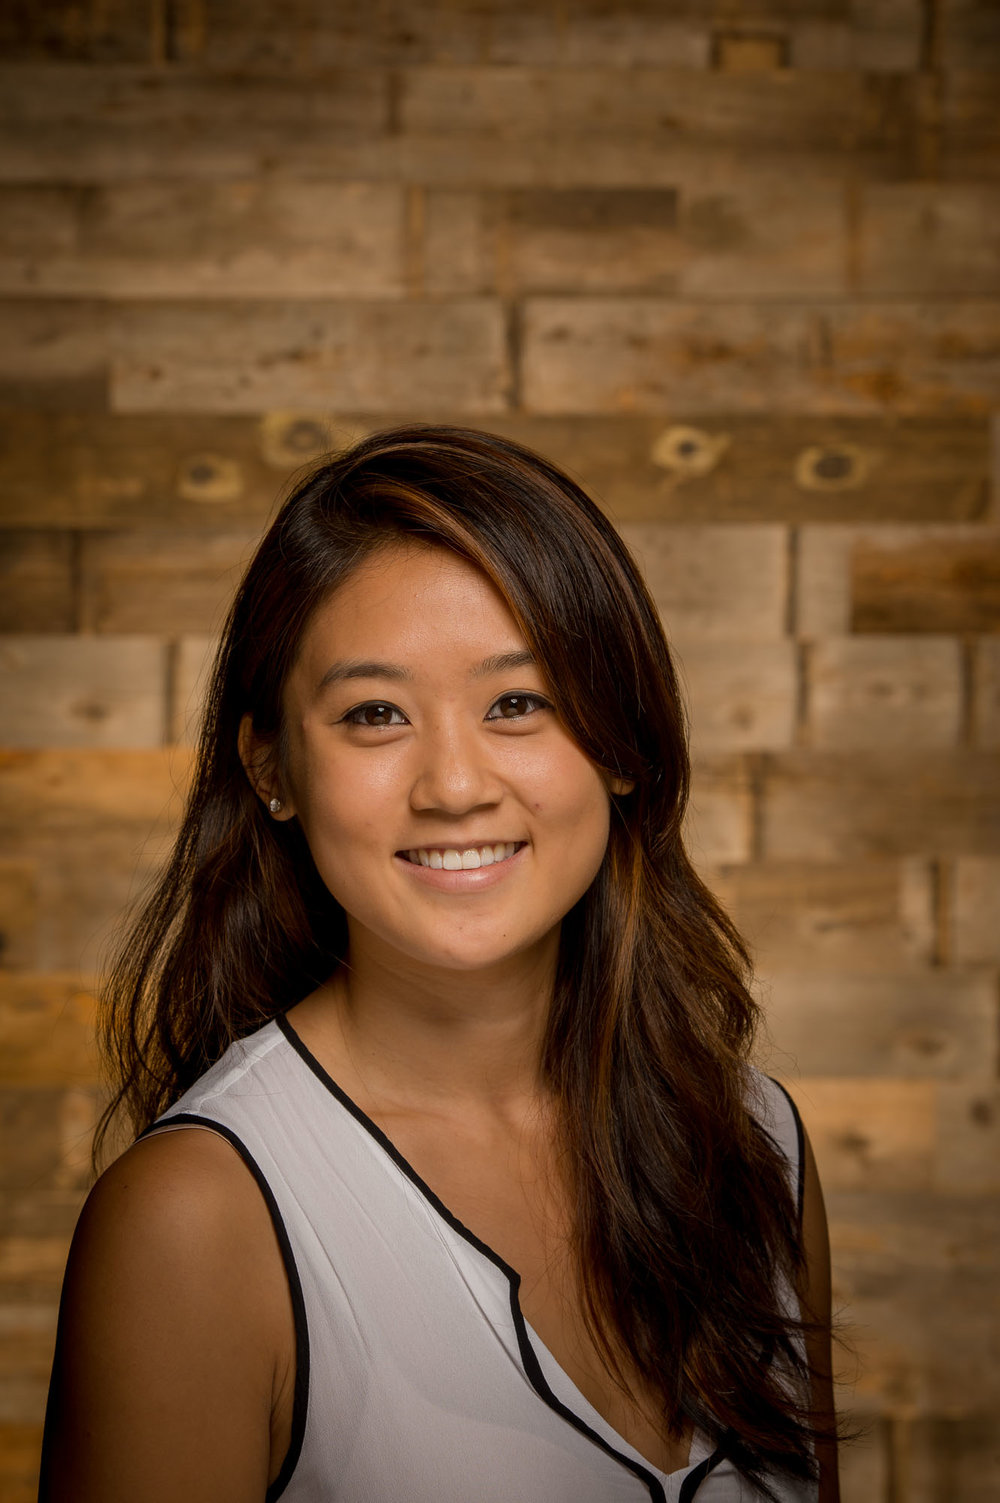 Rachael Foo - Rachael is an Associate at Stripes Group, a New York-based growth equity fund with $2B AUM investing across Internet and Consumer Brand companies. At Stripes, she is responsible for the day to day sourcing in the consumer and tech sectors, with a particular interest in B2C internet, media and marketplace businesses. She works closely with Stripes Group portfolio companies Gimlet Media, GoFundMe, and Reformation. Outside of Stripes, Rachael is actively involved in the LGBT community through Gaingels, an angel syndicate that has invested over $7M in LGBT-led companies.